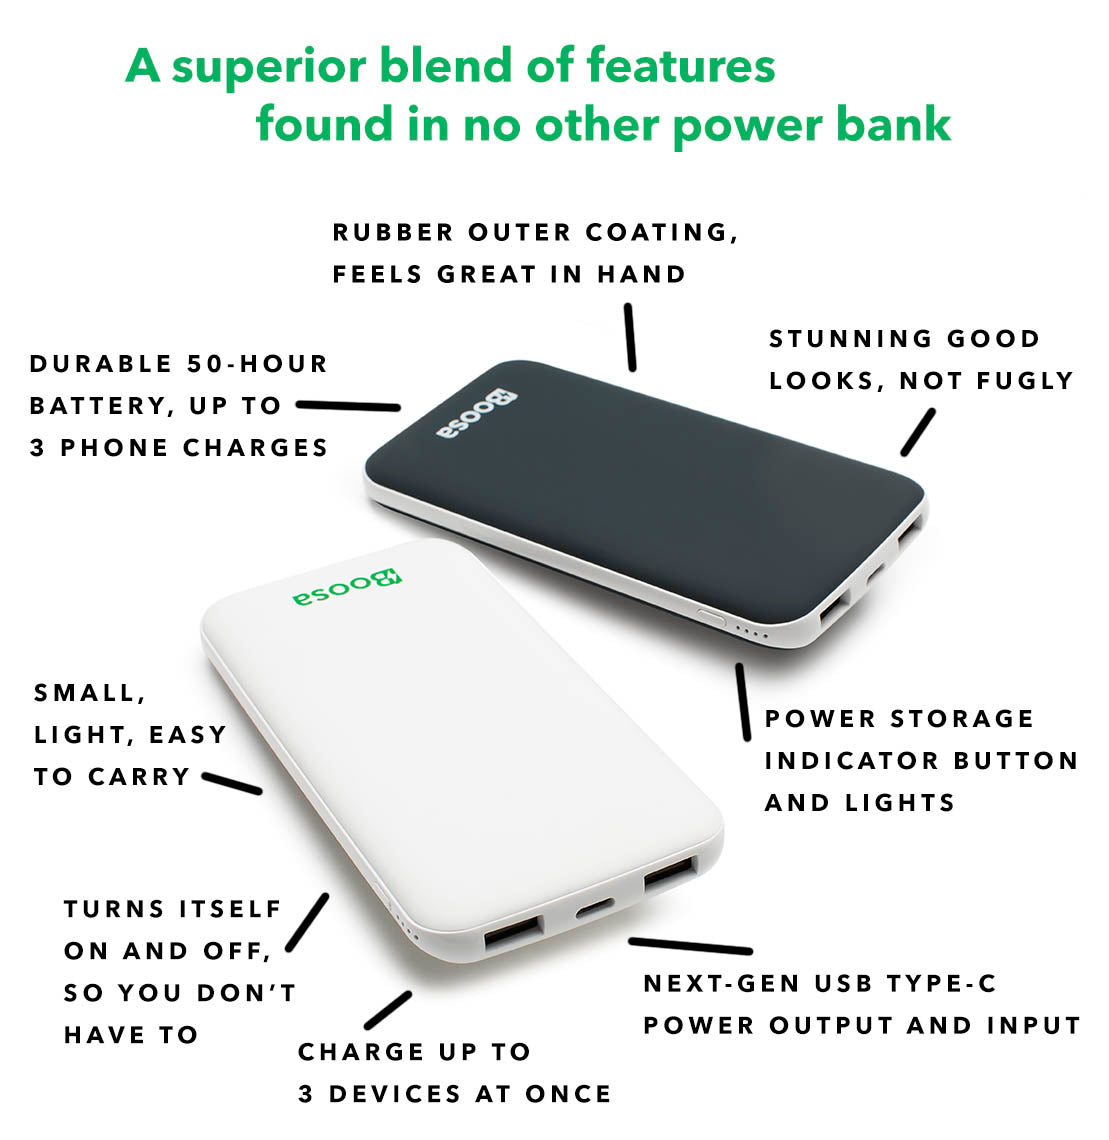 Boosa is so beautiful, it belongs out on the town Stunning not fugly small Lightweight weighs only 199 grams USB-C USB Type-C The next generation of power delivery and Boosa has it (most power banks don't Pass-Thru Charging Technology It's science turns itself on automatically Powers Itself On and Off Boosa is easy as hell to use. No on off switch!  Durable 50-Hour High-Capacity Battery Charger Performance charge your iphone 11 three times Three Versatile High-Speed Charger Ports With the ability to charge three devices at once Boosa will save you and your loved ones every time power bank portable phone charger battery bank